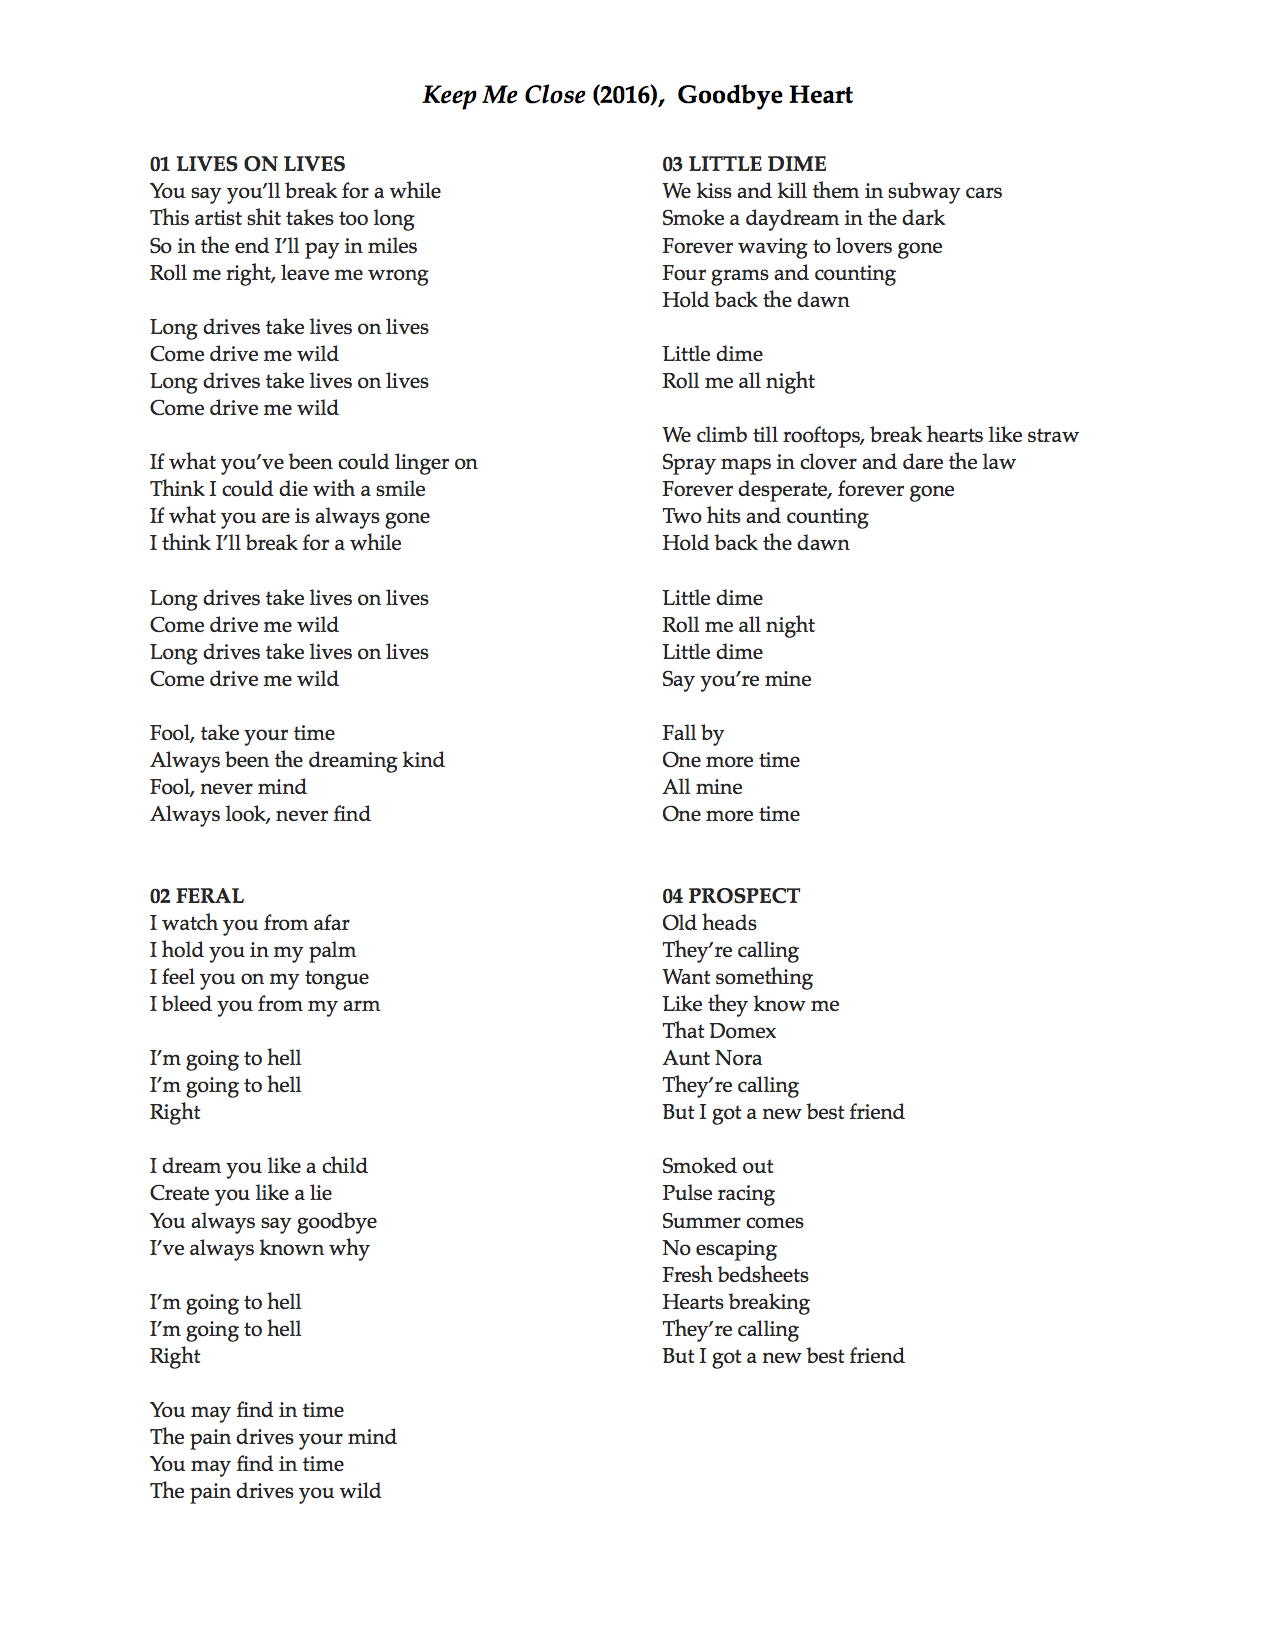 keep me close lyrics 1-4